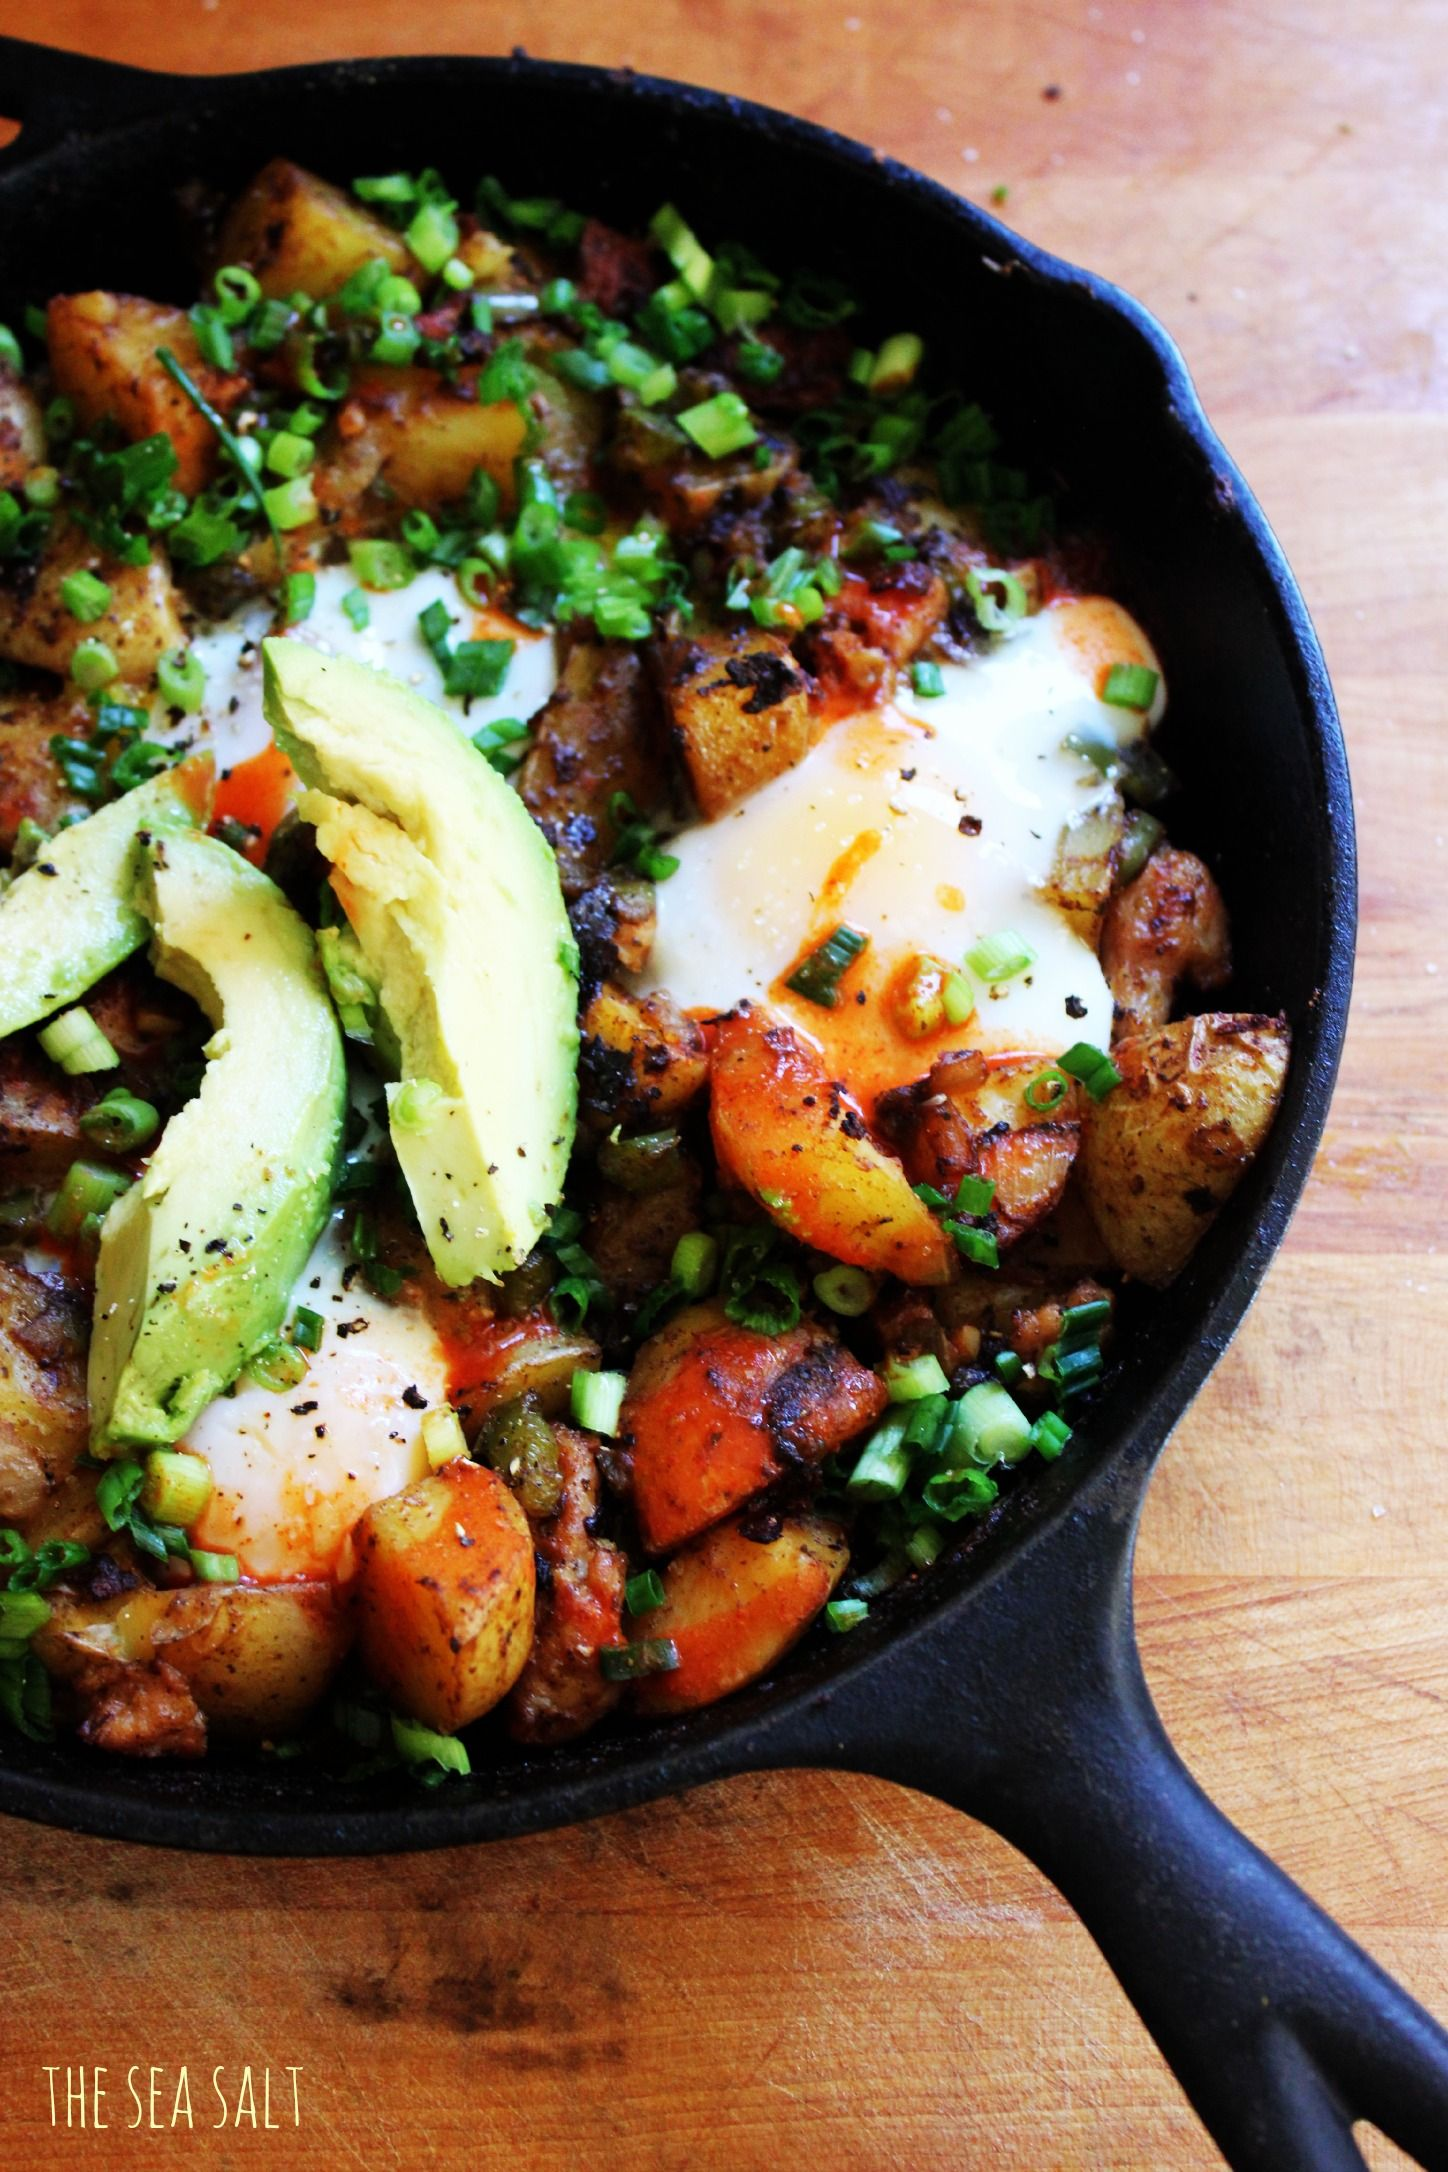 Easy Make Ahead Breakfast: Smoky Potato, Onion and Pepper Skillet with Chicken Sausage from The Sea Salt